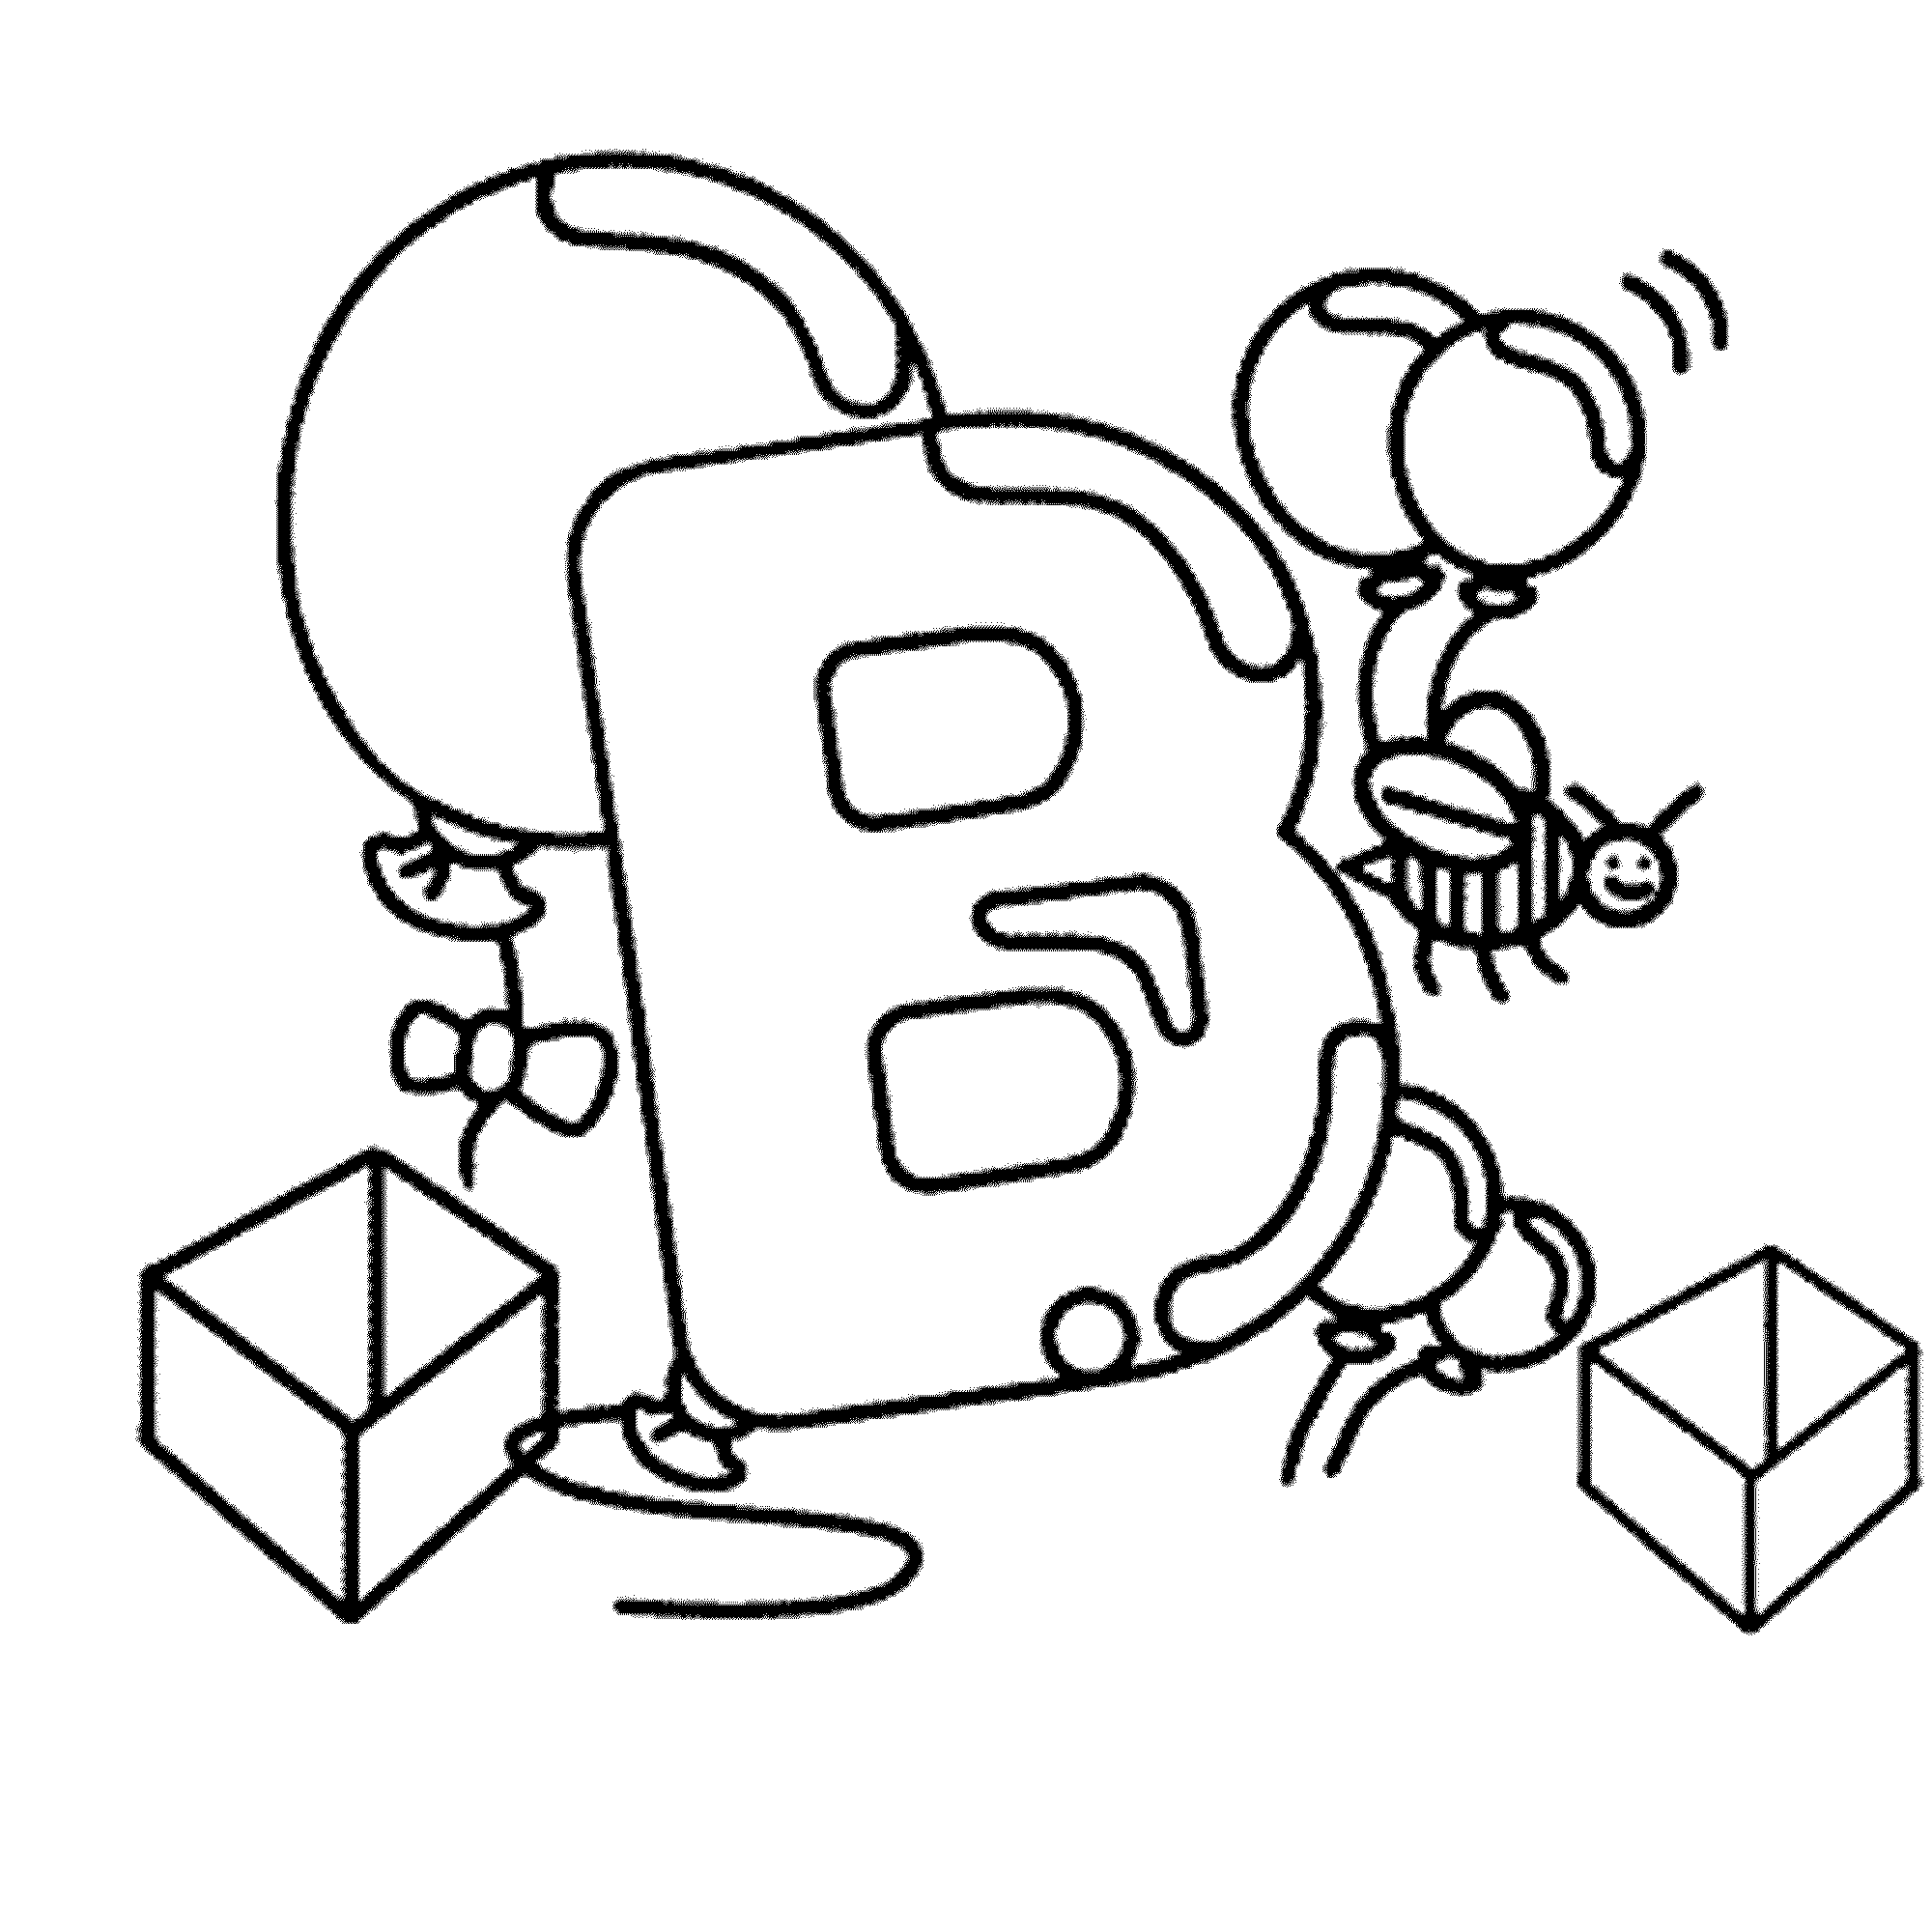 Letter B Baloon Coloring Pages Alphabet